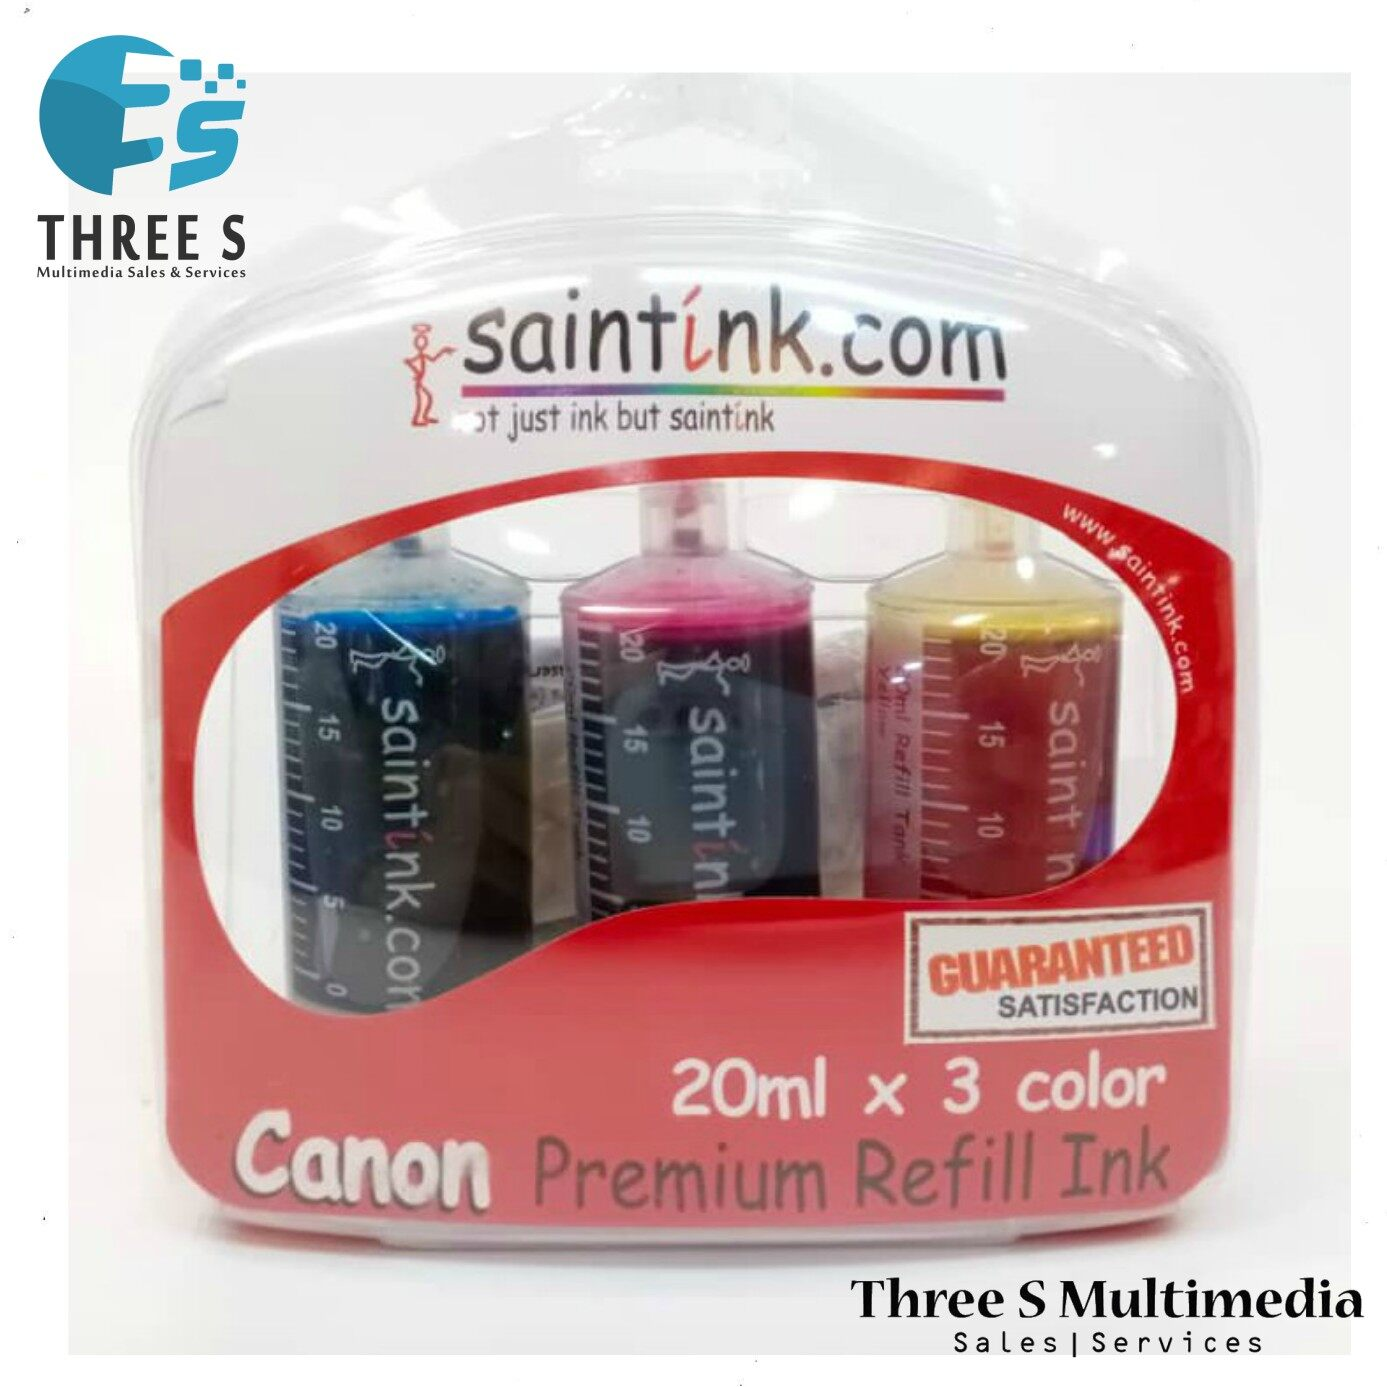 Saintink Refill Ink Canon E400/500/510/560/600/610 Ink